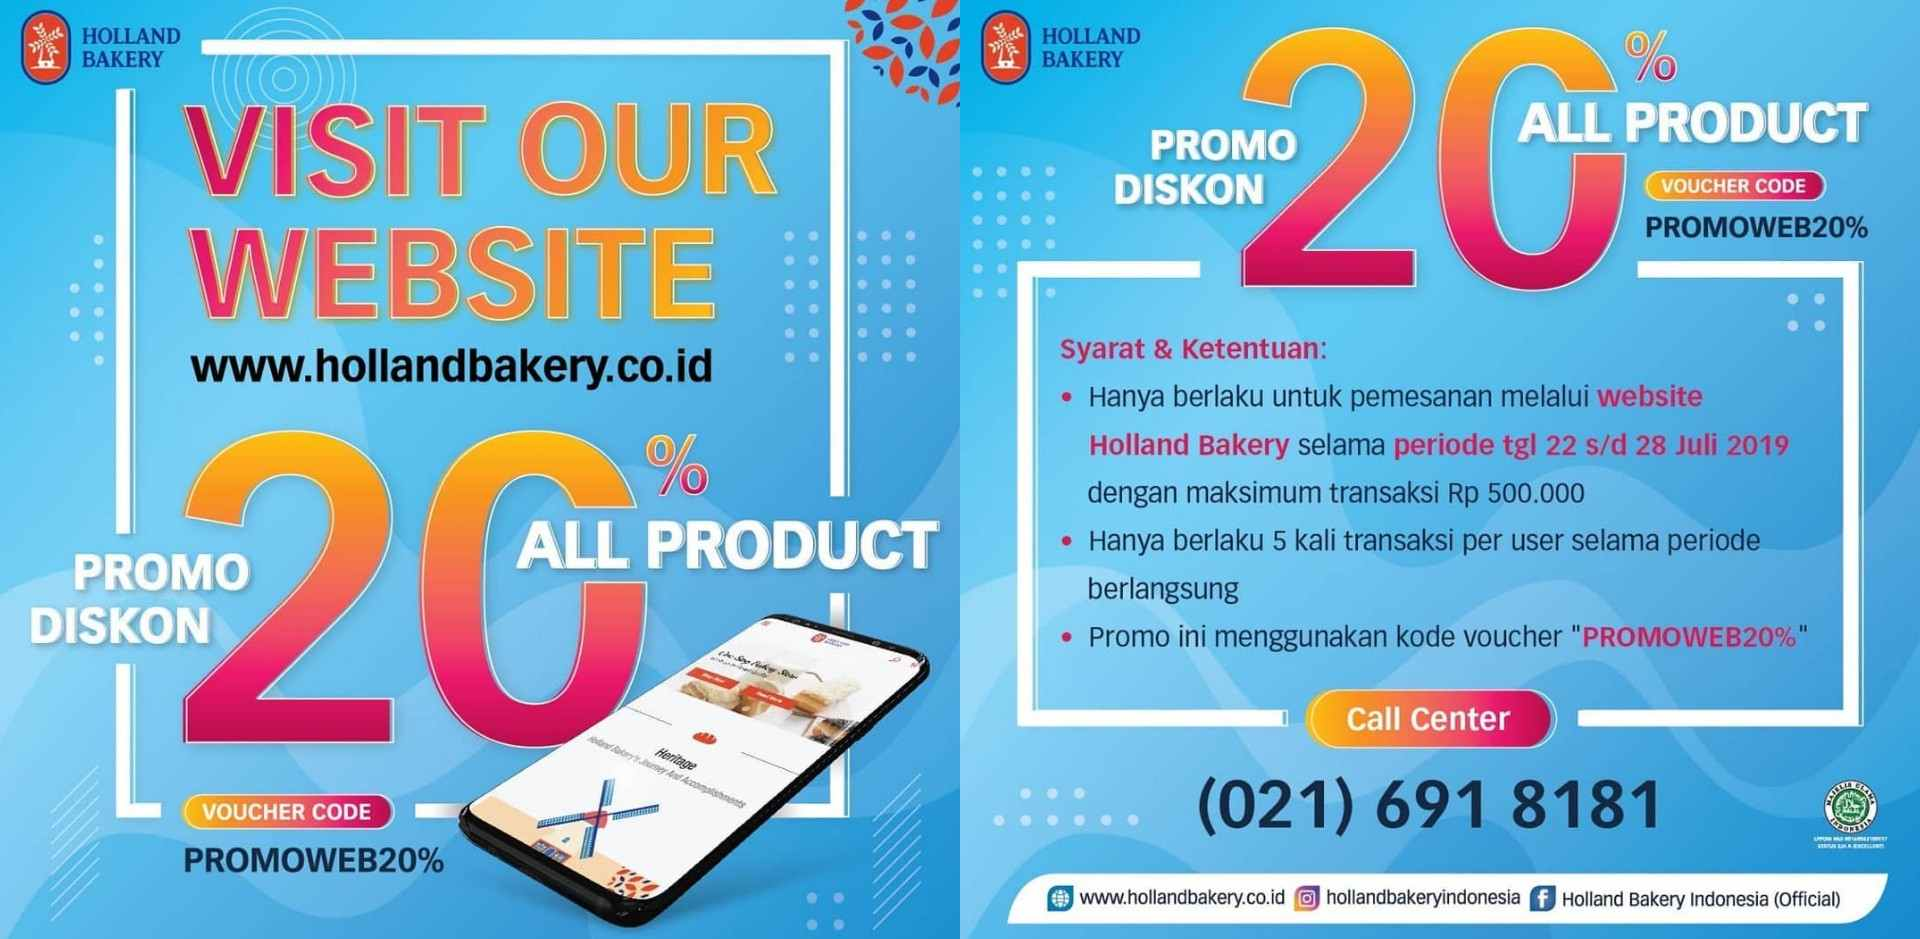 HOLLAND BAKERY Promo DISKON 20% via website